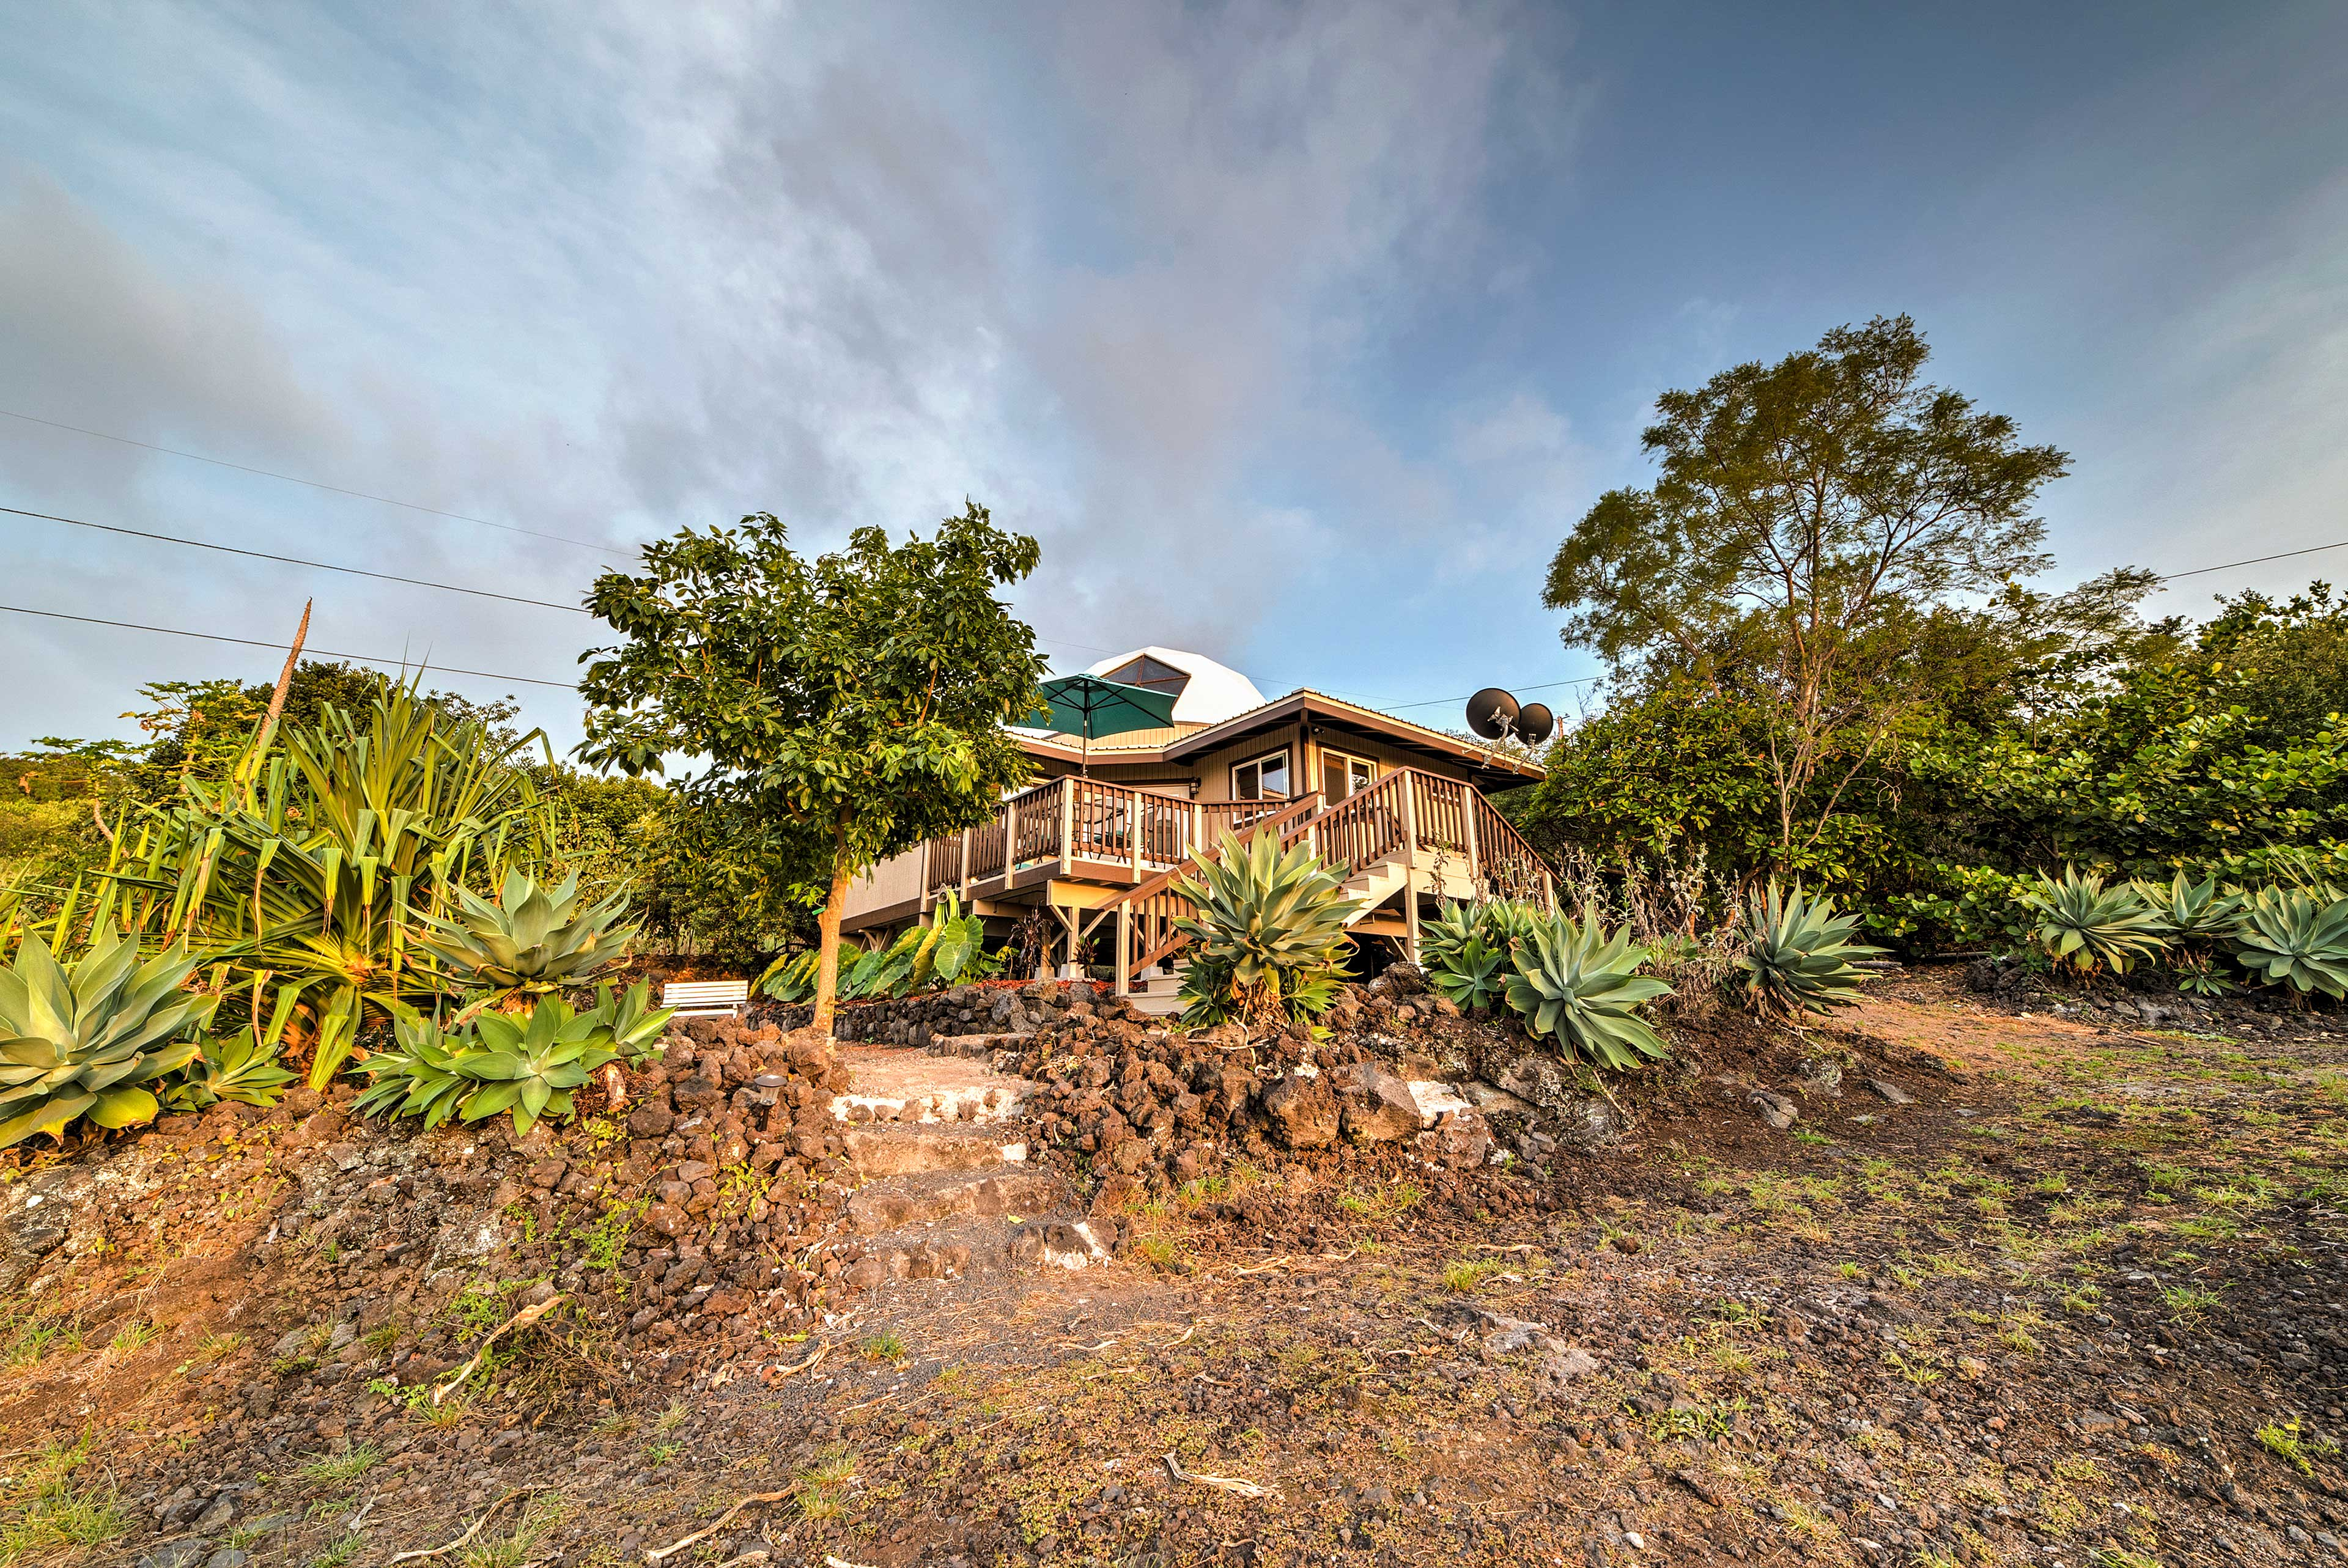 Paradise awaits when you stay at this unique home in Captain Cook.